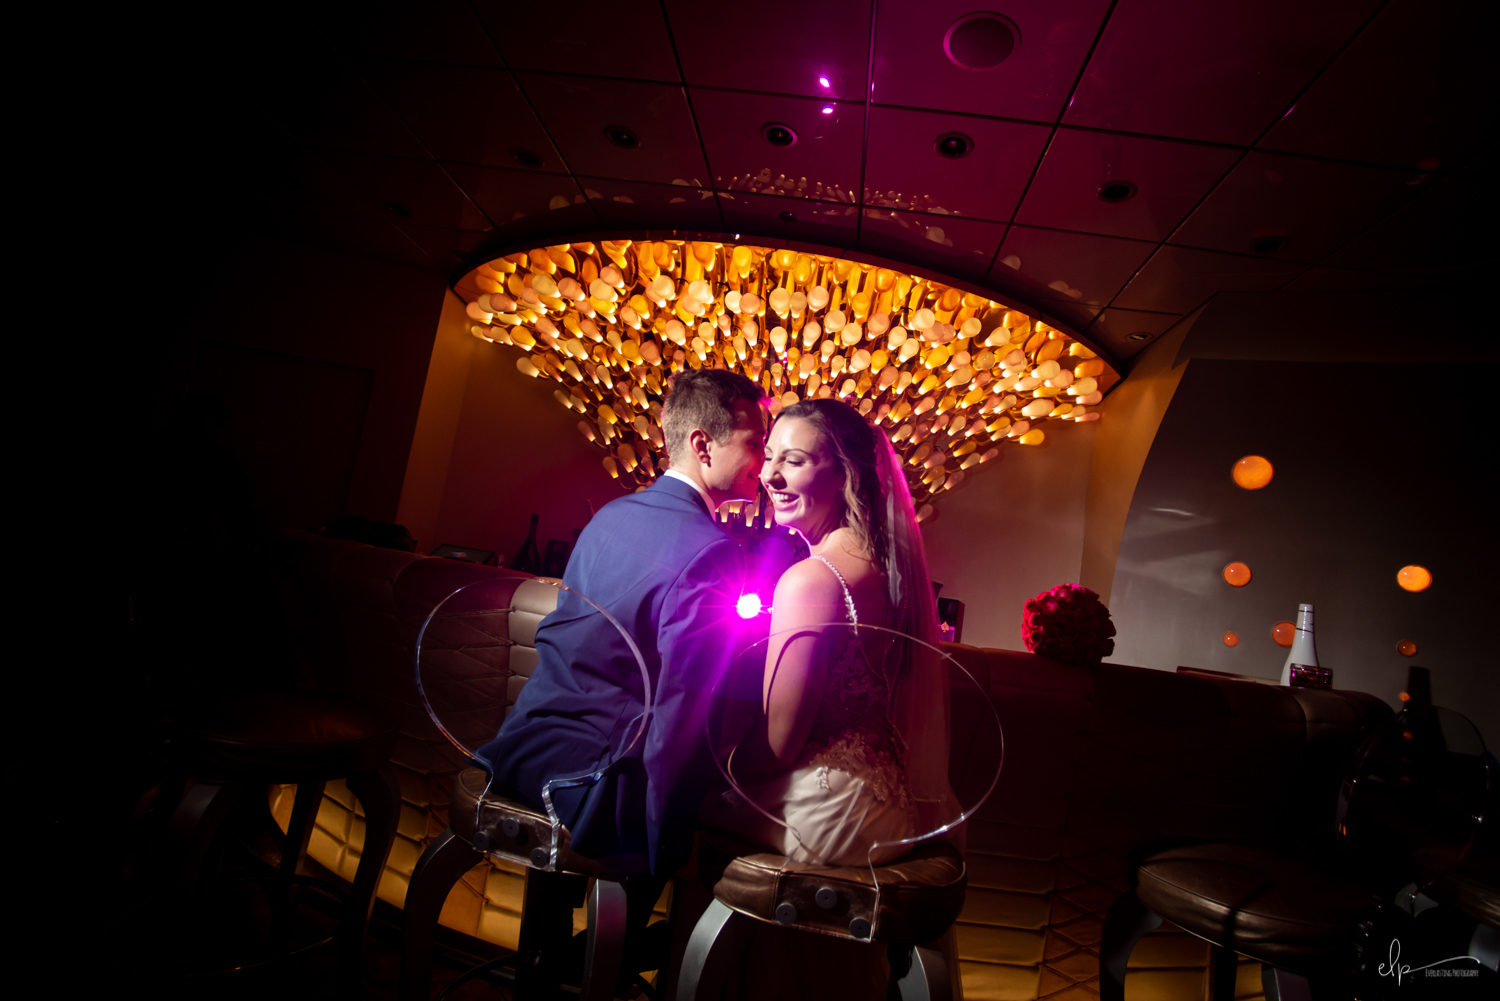 wedding photography at pink lounge on disney dream